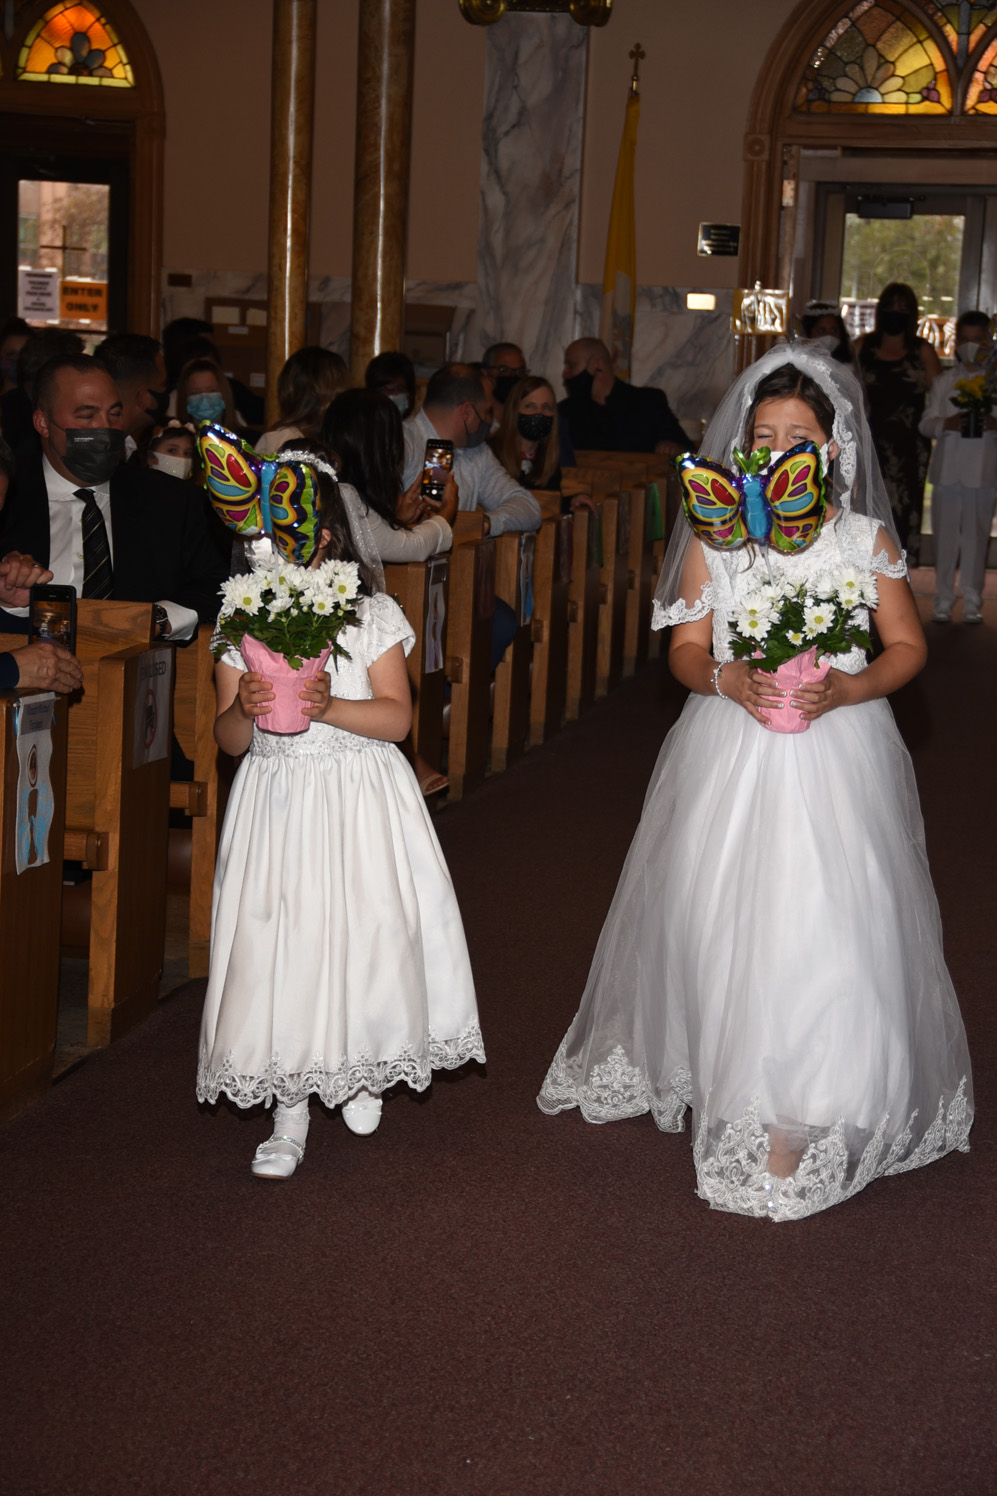 FIRST-COMMUNION-MAY-2-2021-1001001196